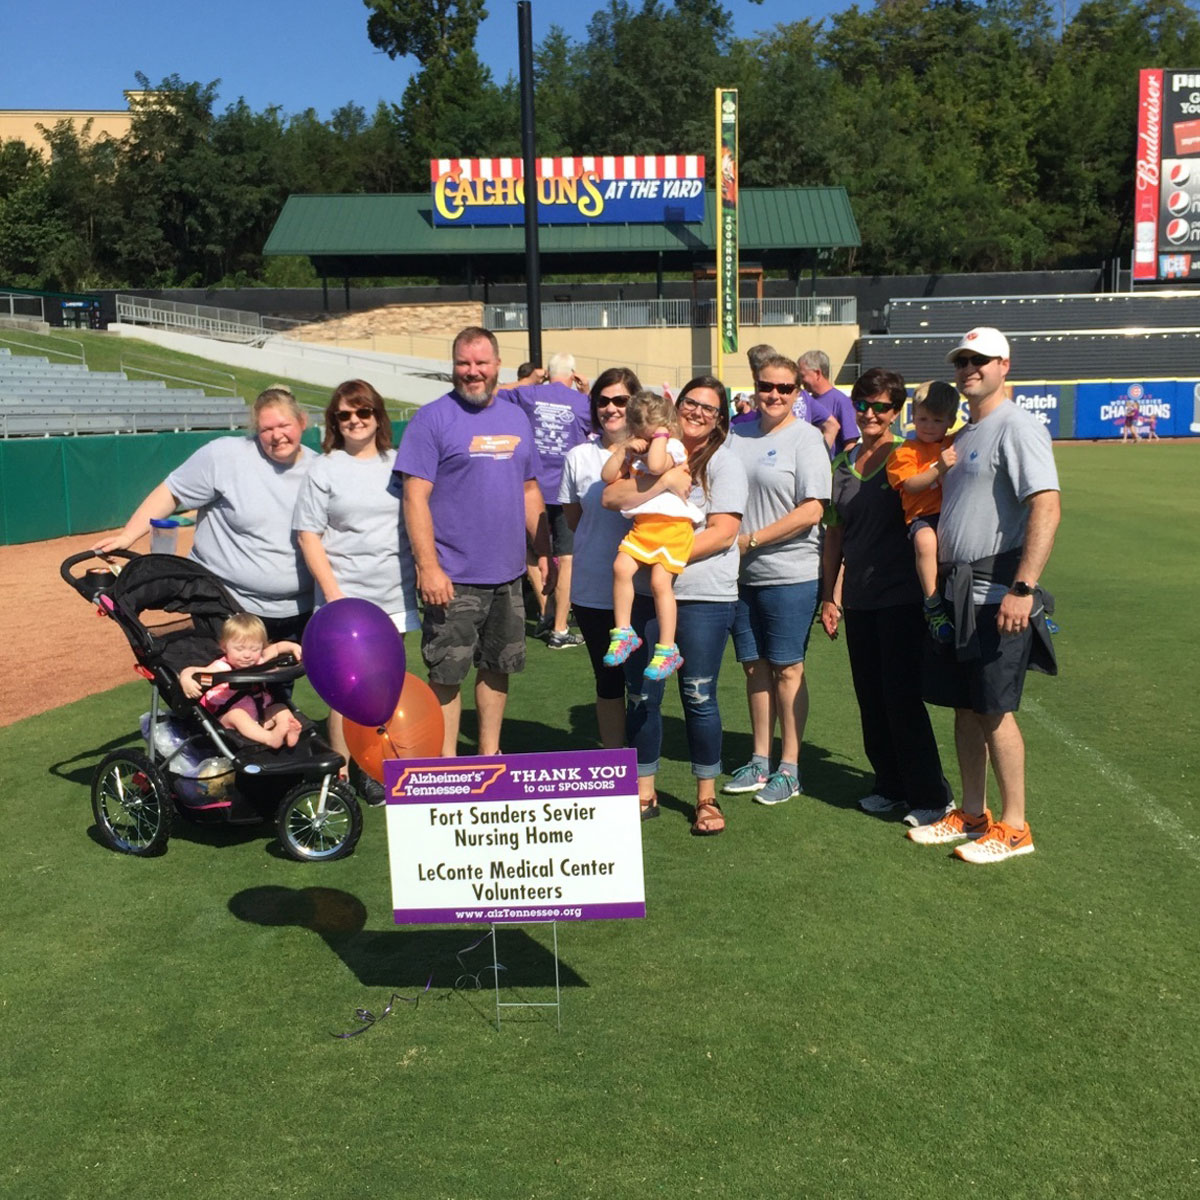 LeConte Medical Center and Fort Sanders Sevier Nursing Home employees and volunteers participated in the Smoky Mountain Alzheimer's Walk on Saturday, September 16th at Smokies Stadium.